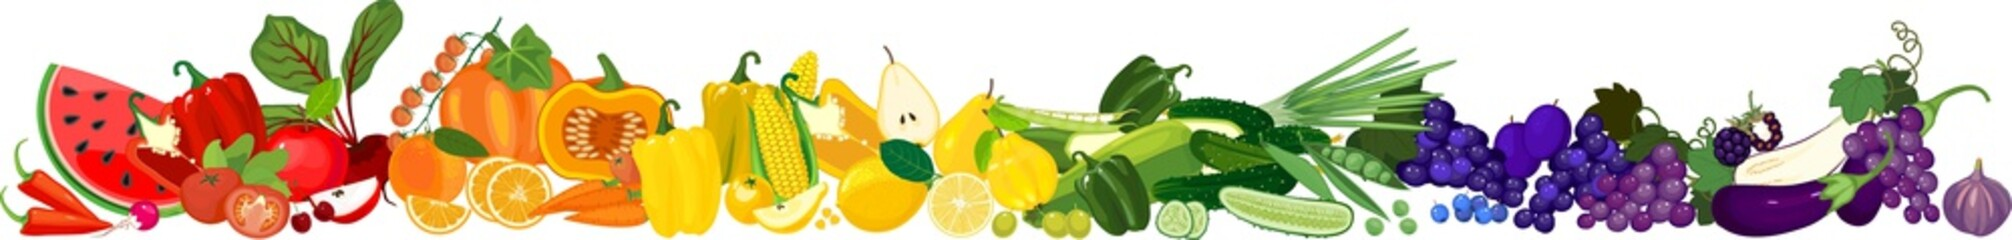 Wall Mural - Big set of different ripe fruits and vegetables in all colors of rainbow. Vegetables and fruits border